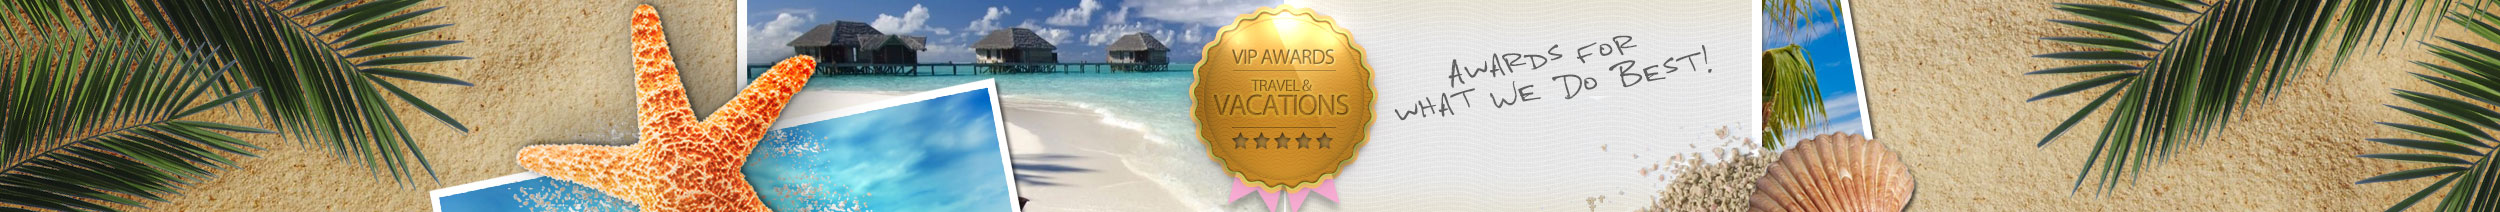 VIP Vacations is thrilled to receive these fabulous awards from Karisma Resorts (El Dorado, Azul, Generations, and Nickelodeon hotels)